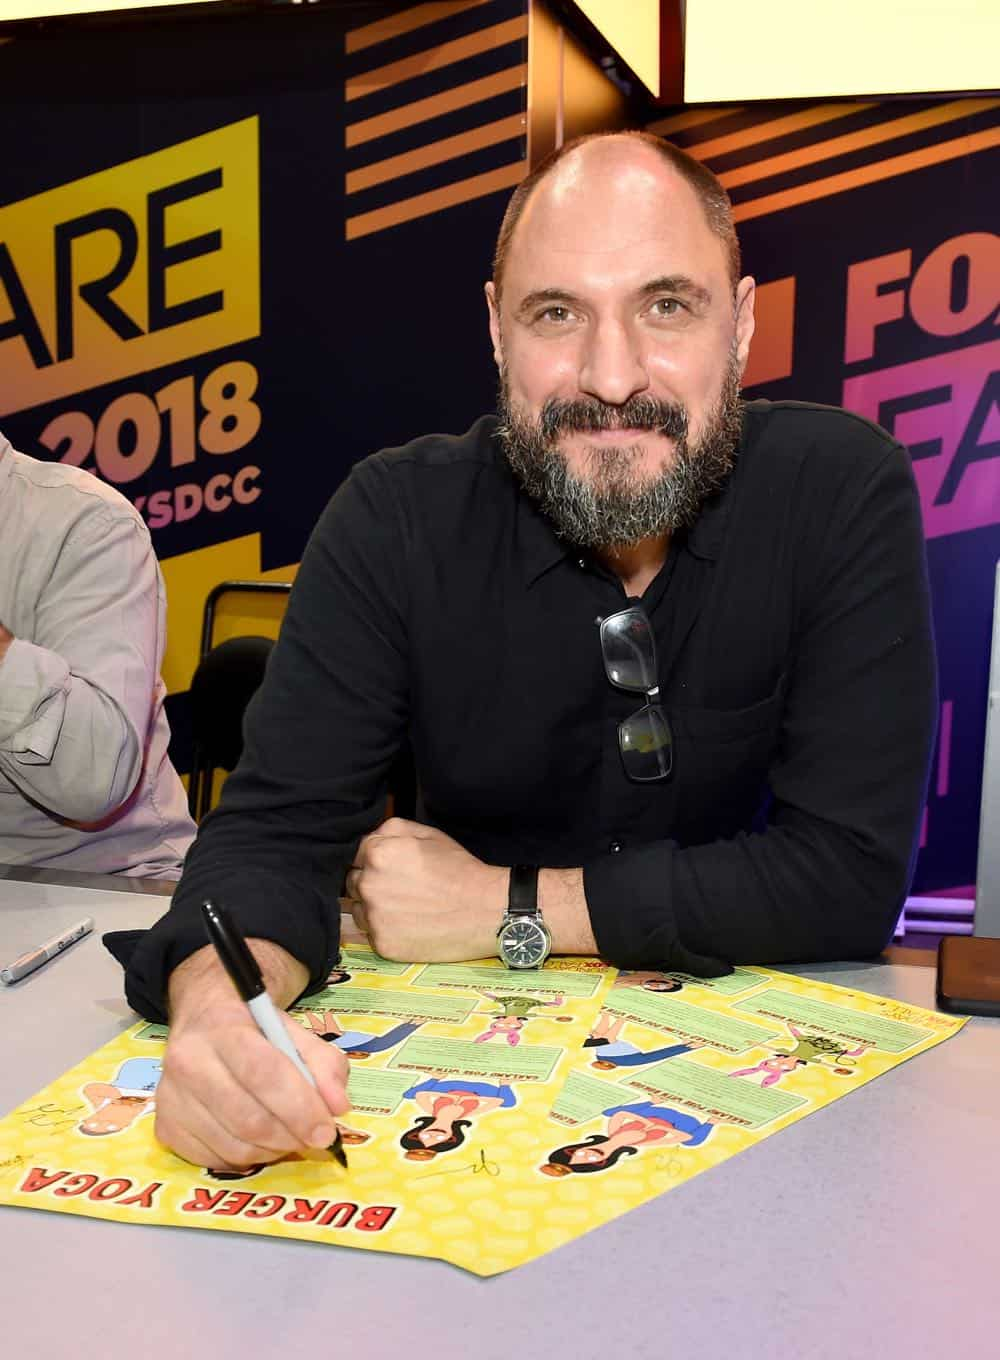 FOX FANFARE AT SAN DIEGO COMIC-CON © 2018: Creator Loren Bouchard during the BOB'S BURGERS booth signing on Friday, July 20 at the FOX FANFARE AT SAN DIEGO COMIC-CON © 2018. CR: Frank Micelotta/FOX © 2018 FOX BROADCASTING